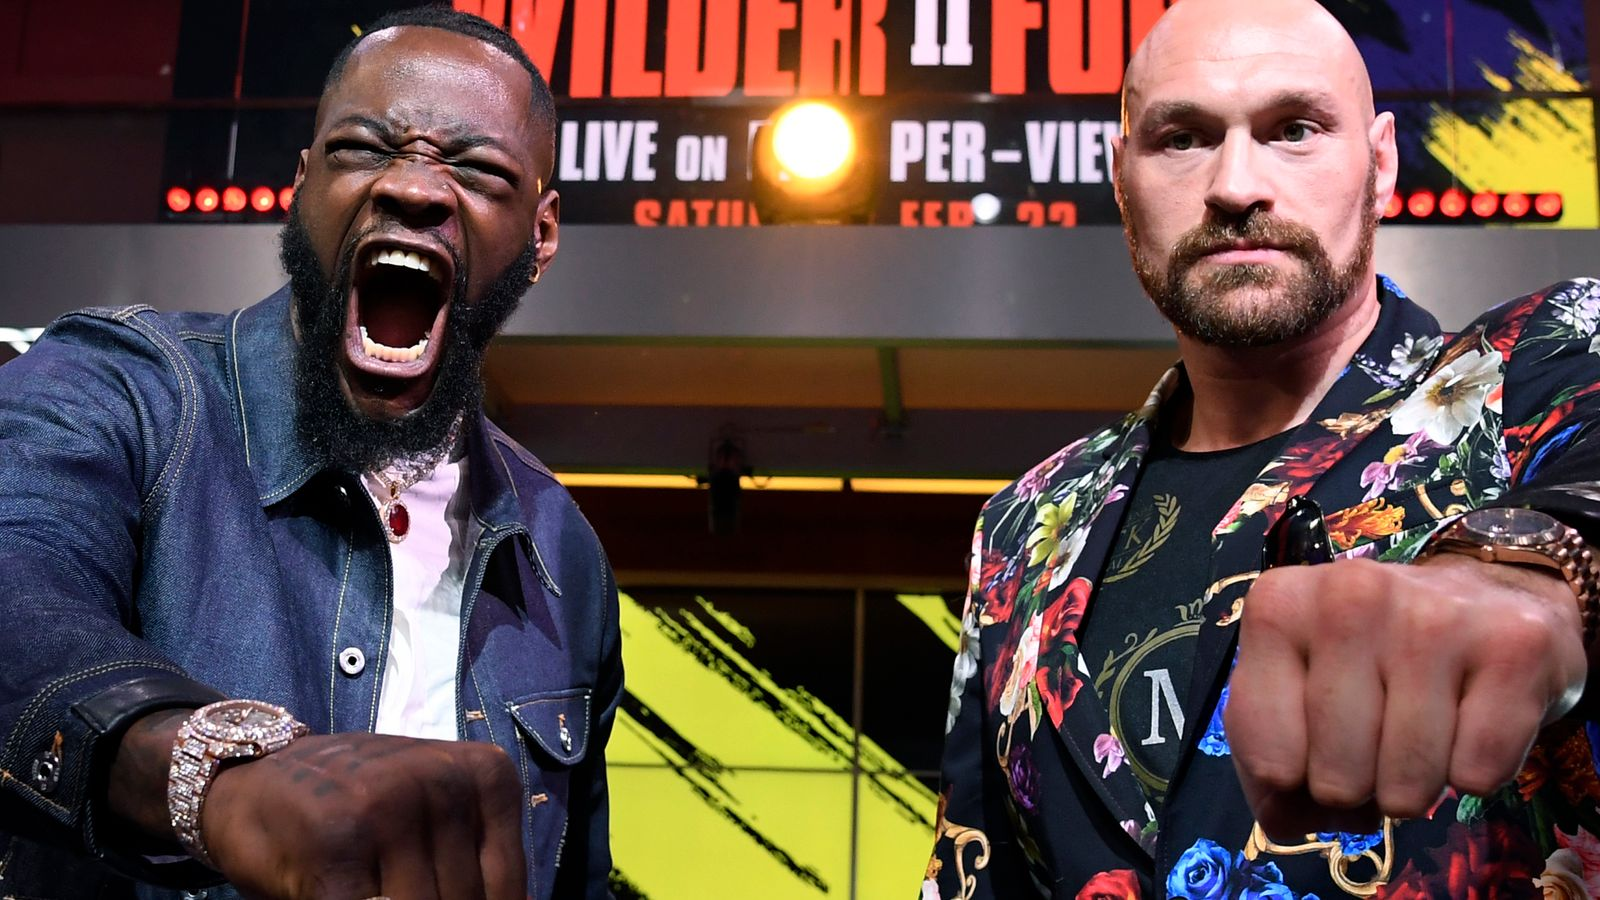 Wilder vs Fury 2: Deontay Wilder claims he didn't feel Tyson Fury's power in first fight | Boxing News